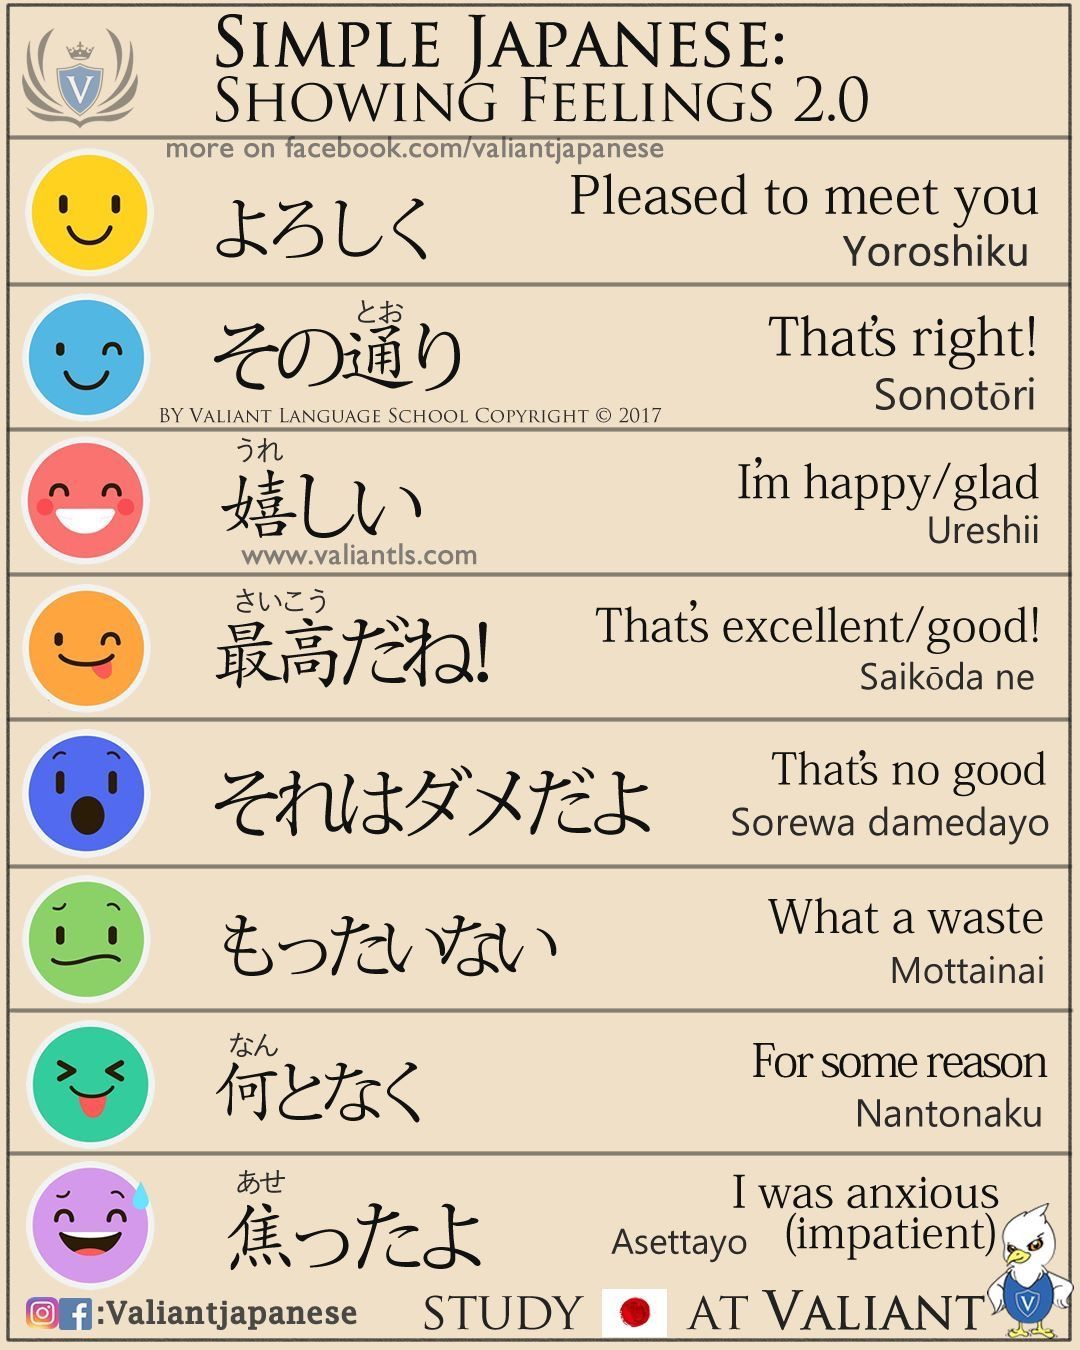 Crunchy Nihongo! — BASIC EASY KATAKANA Katakana sound is